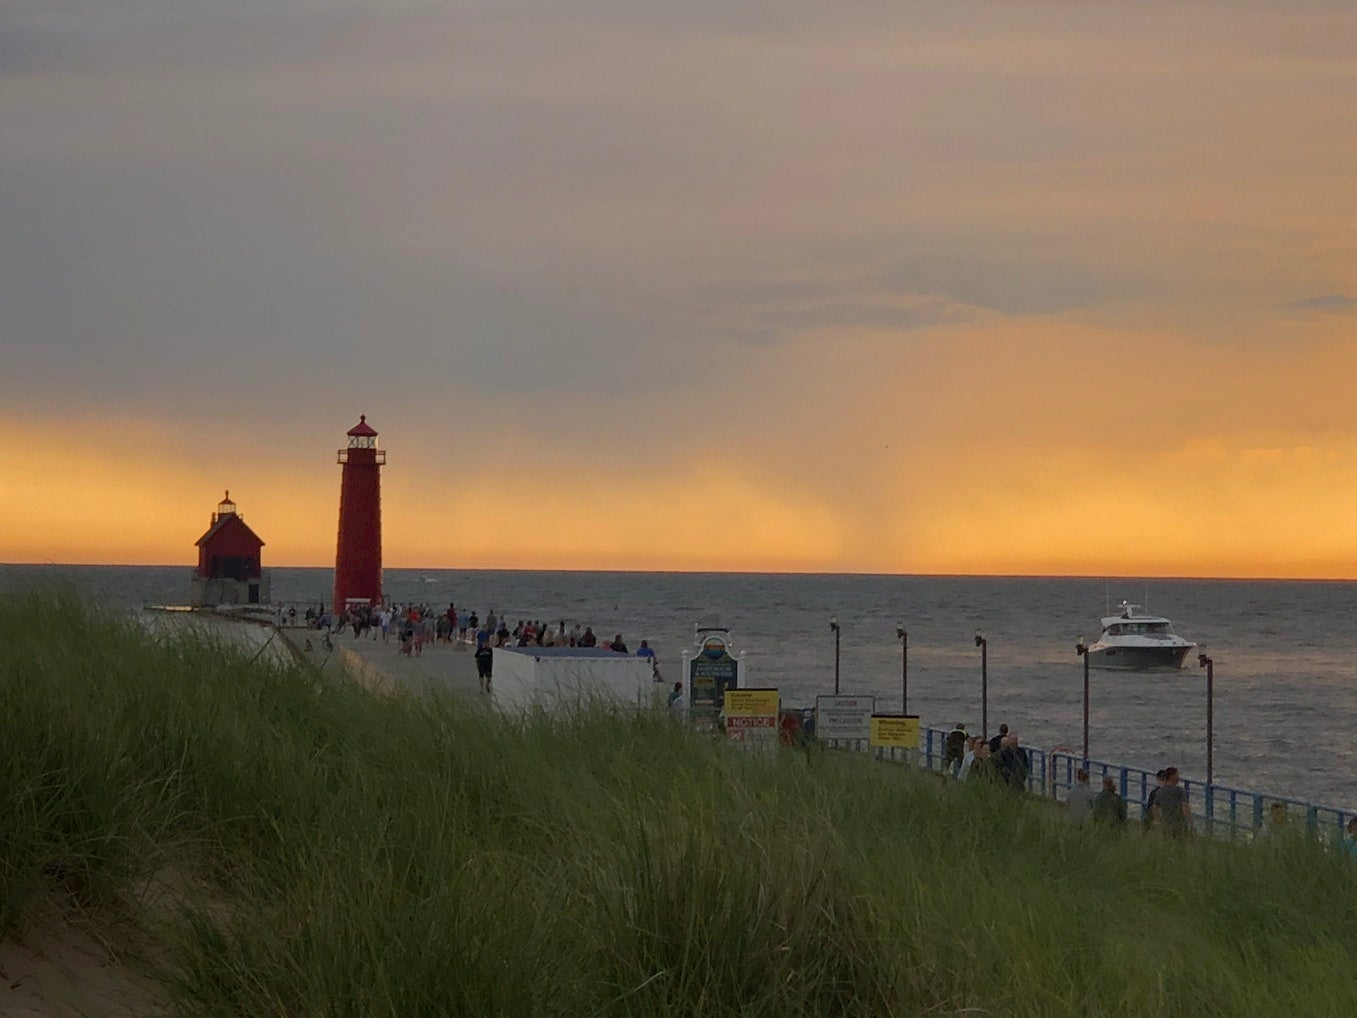 Lighthouse visible at end of crowded beach boardwalk at sunset.